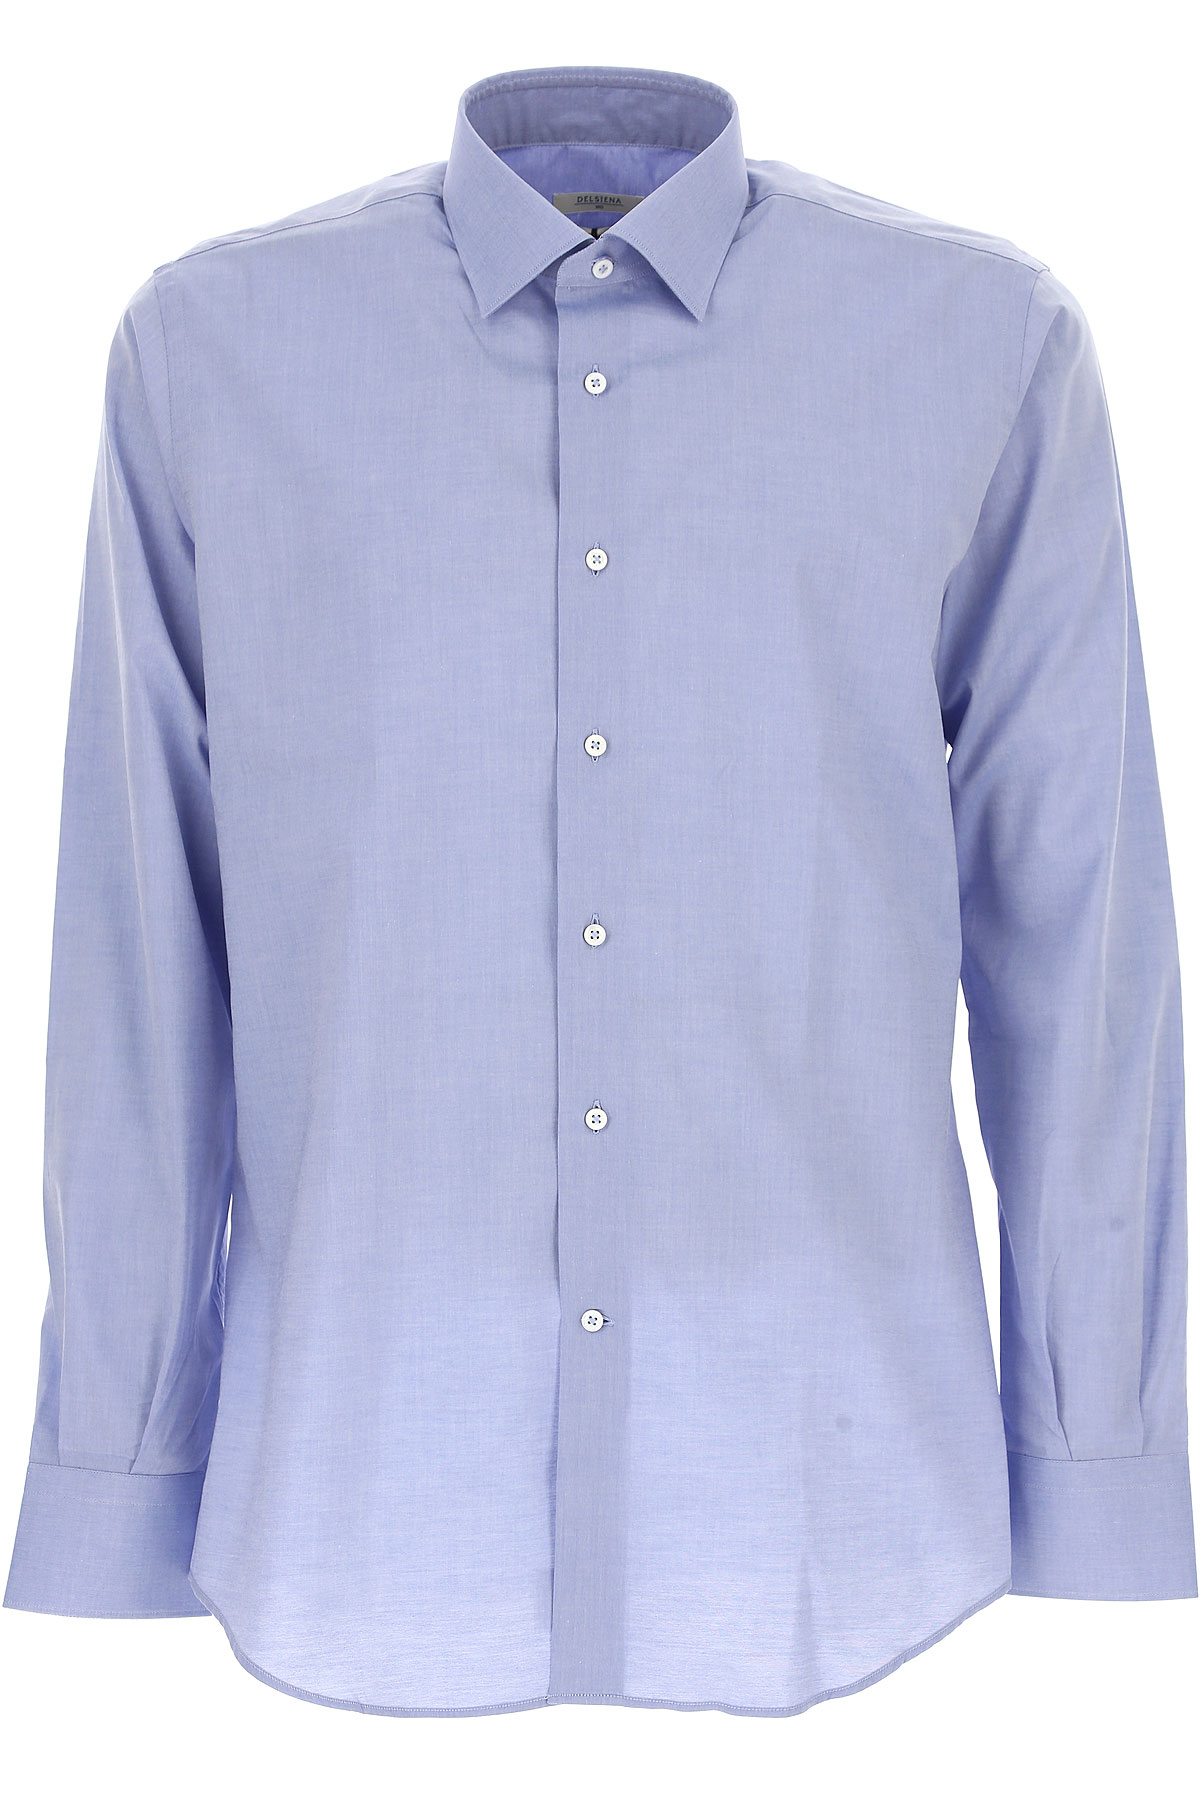 Image of Del Siena Shirt for Men On Sale, Azure, Cotton, 2017, 15 15.5 15.75 16 16.5 17 17.5